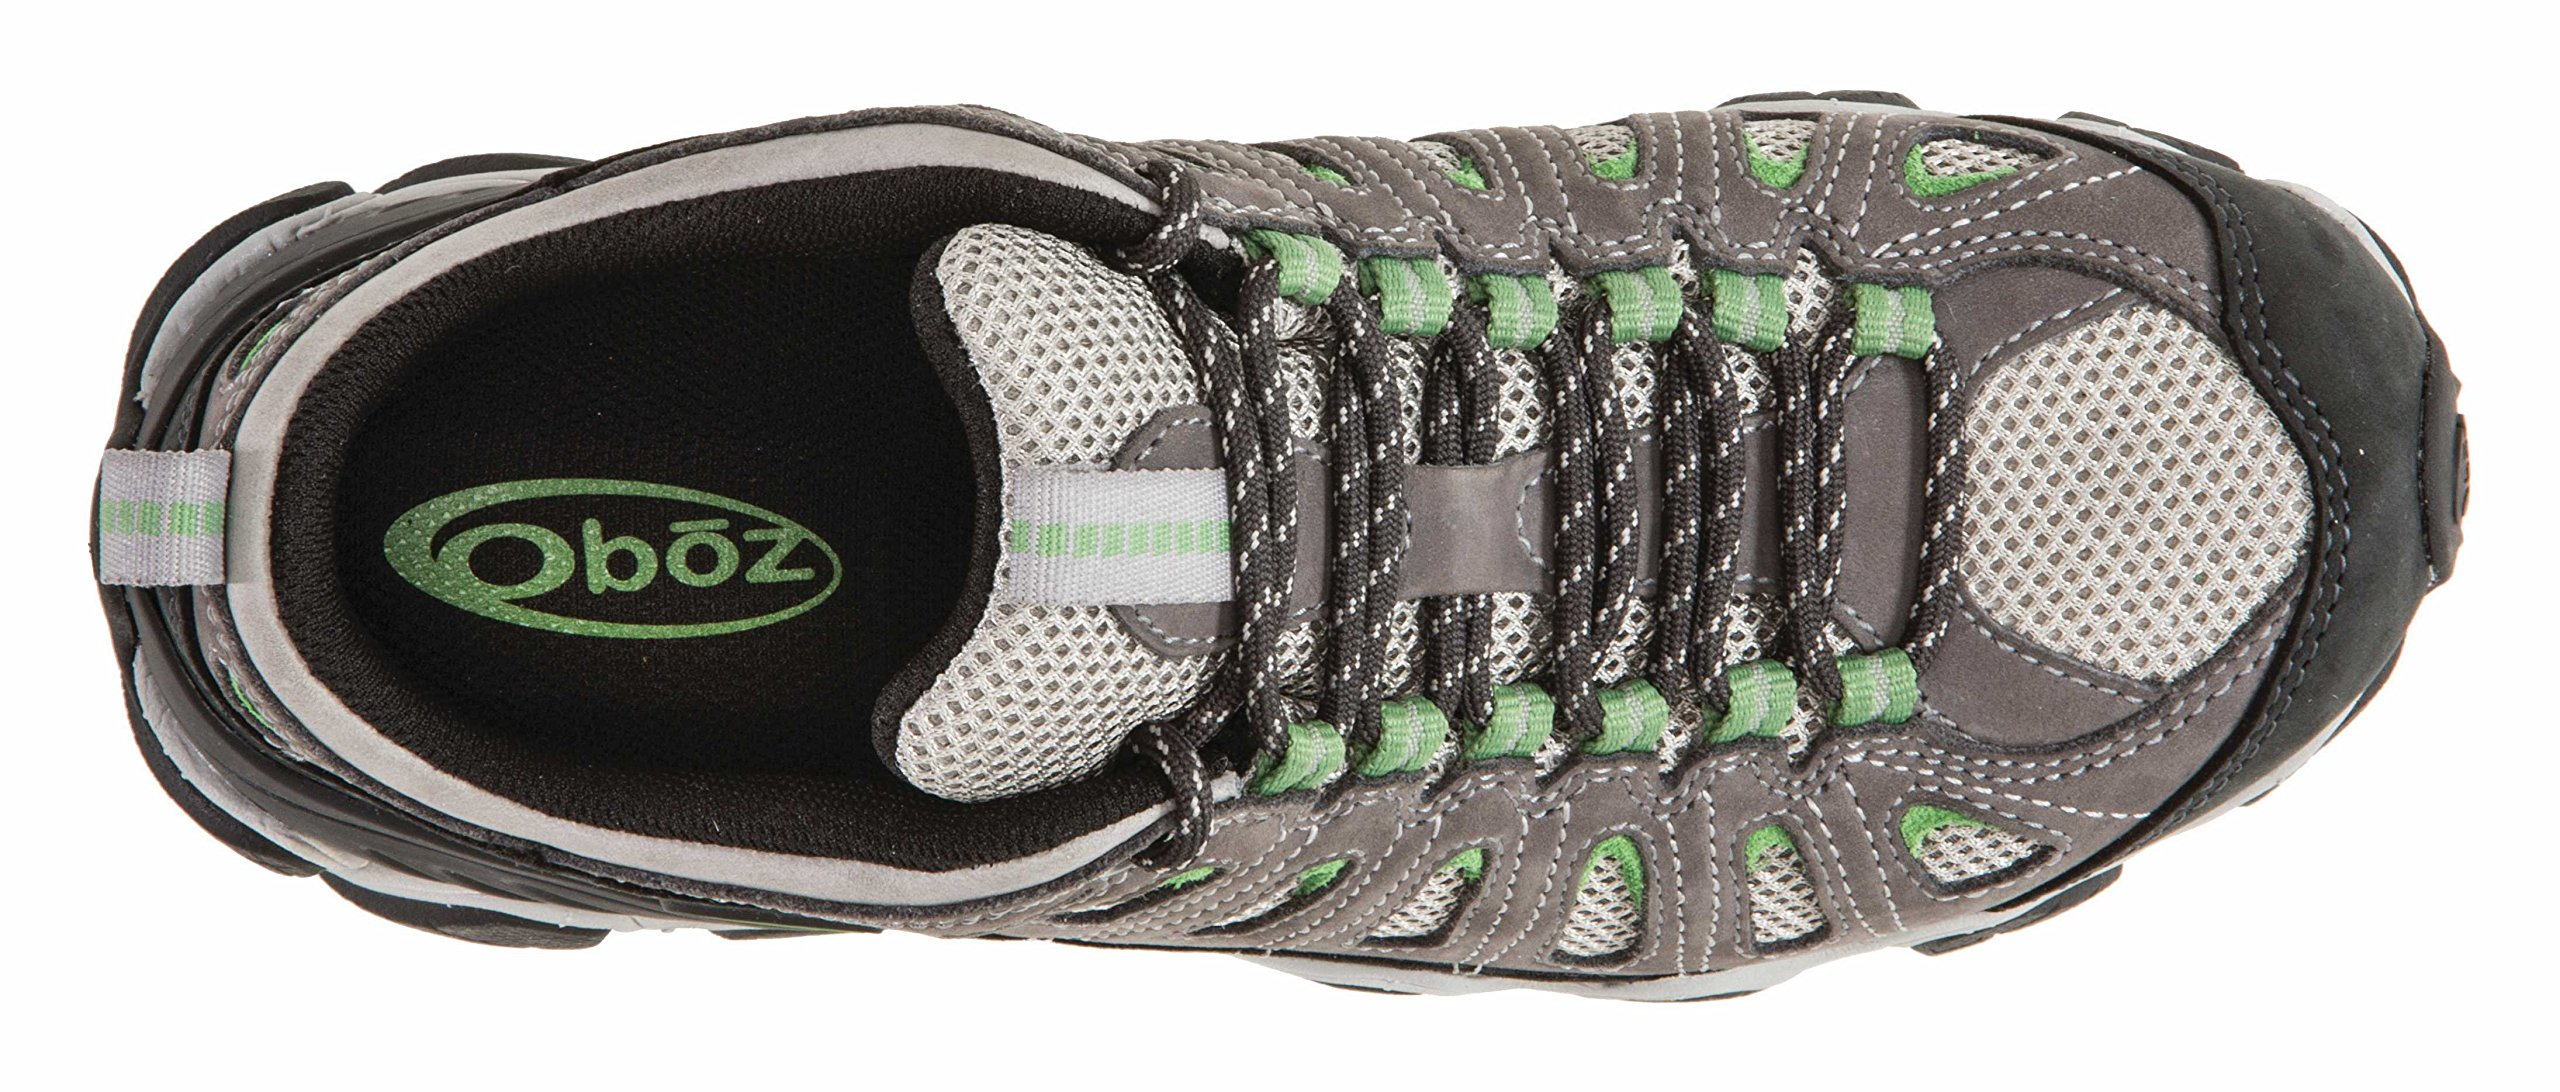 Oboz Women's Sawtooth Low Hiking Shoe,Clover,7 M US by Oboz (Image #4)